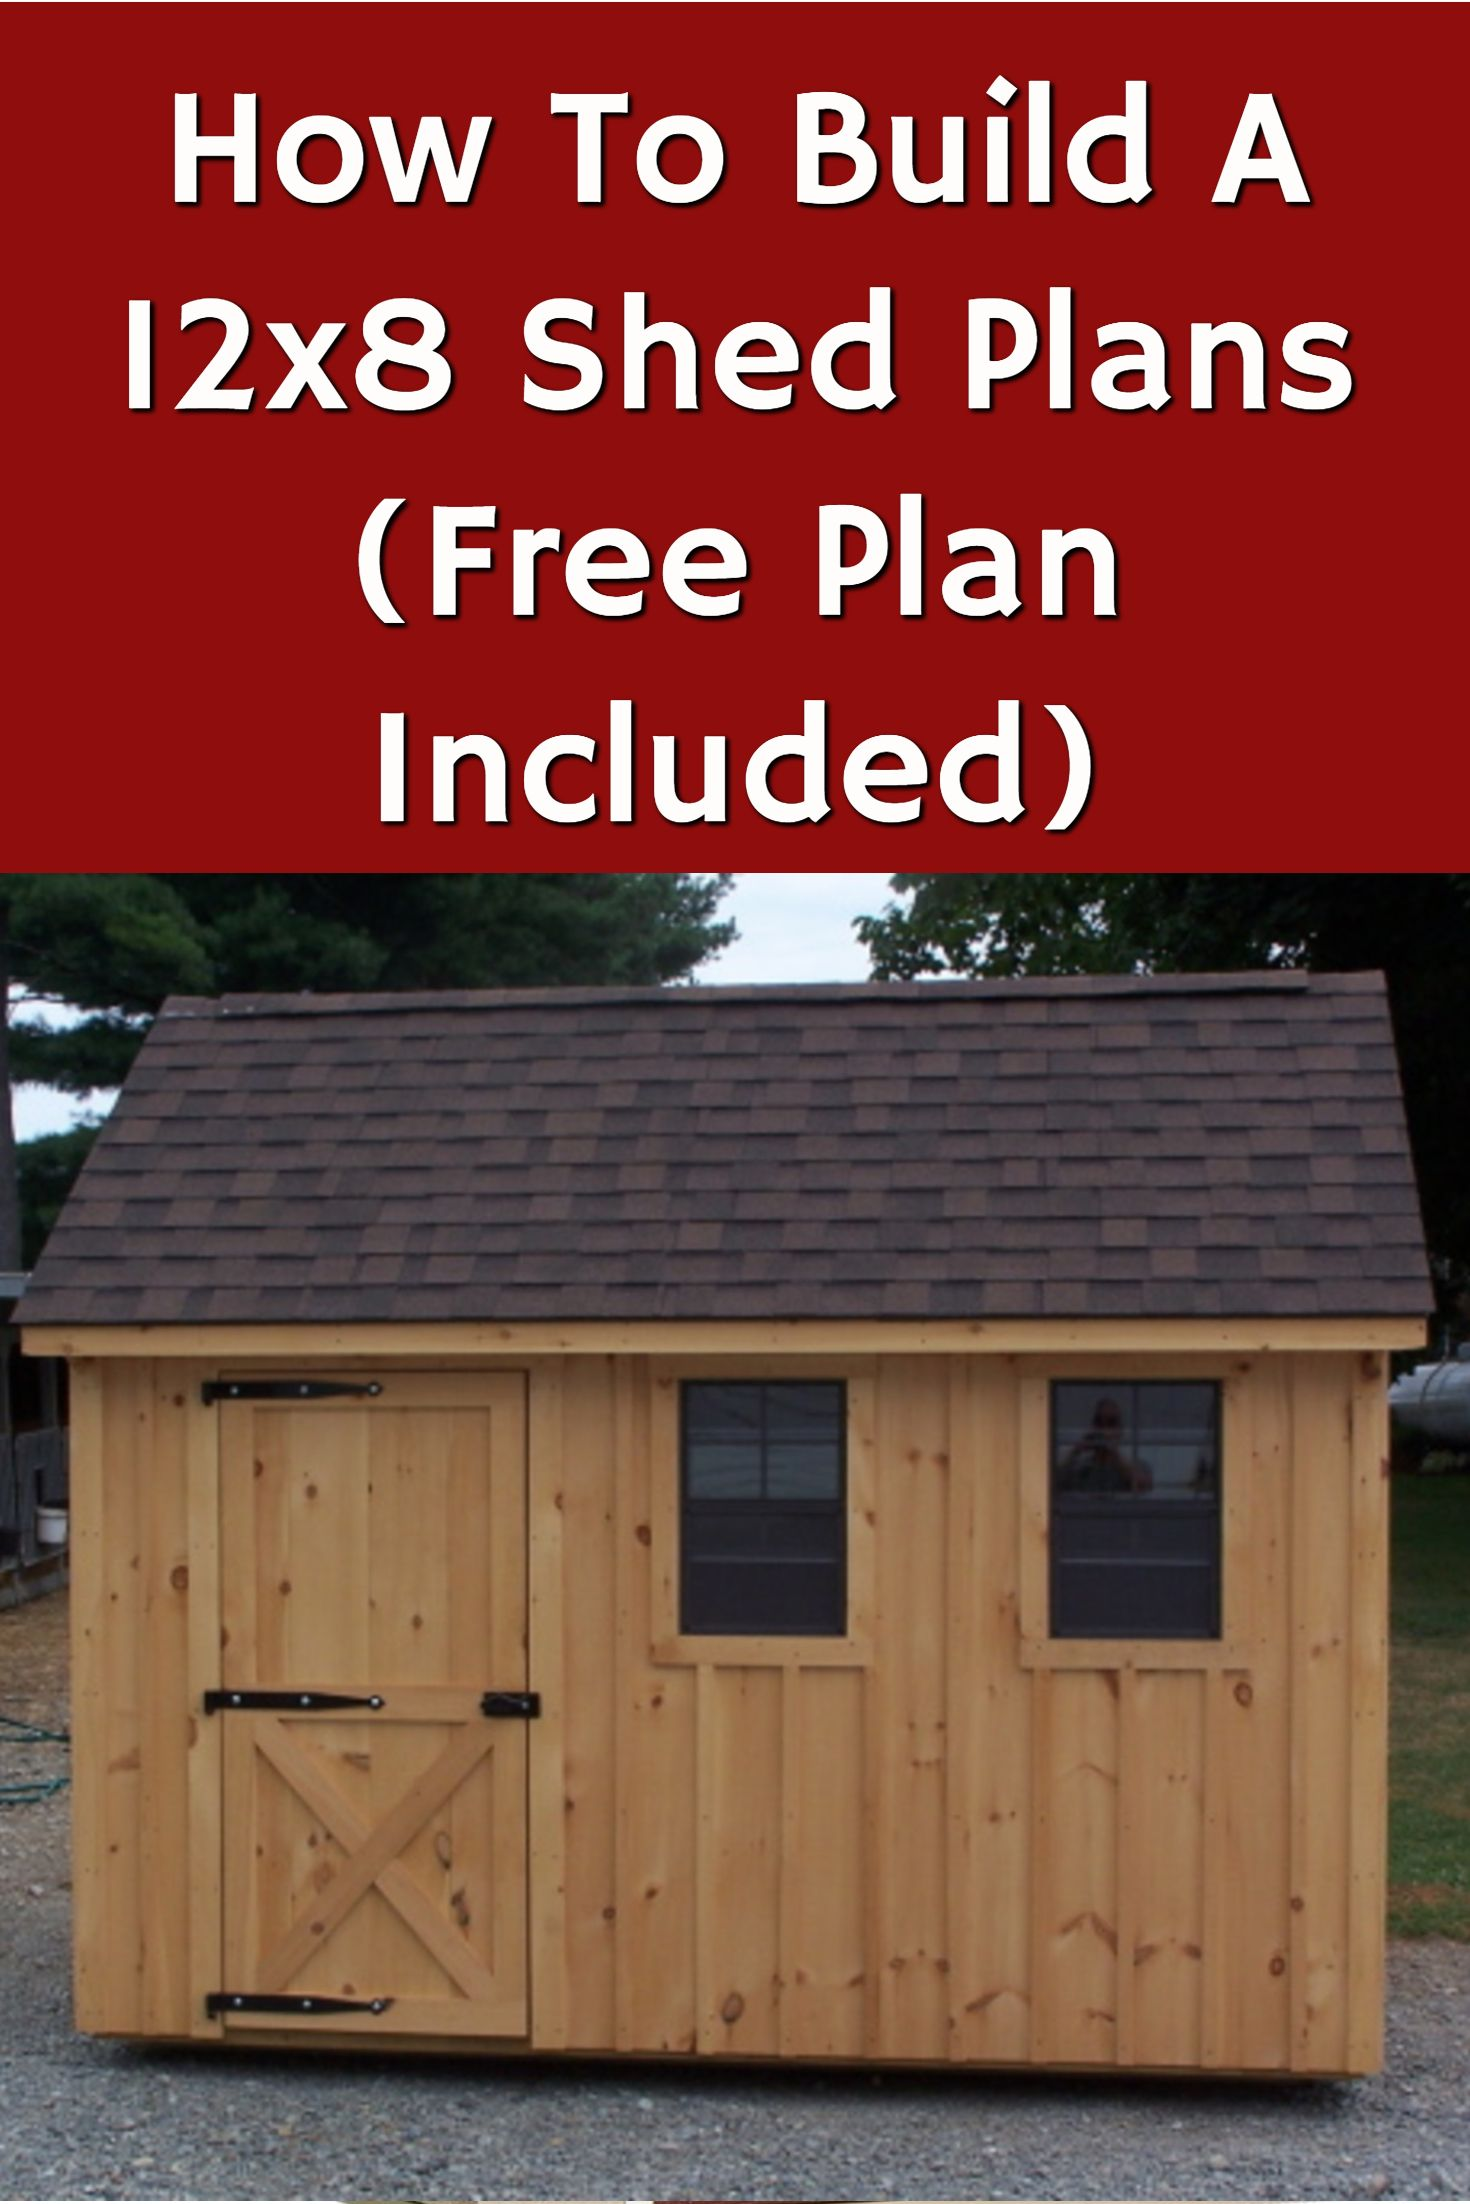 How To Build A 12x8 Shed Plans Ideas Free Plan Included Download Shed Plans 12x8 Shed Shed Plans Shed